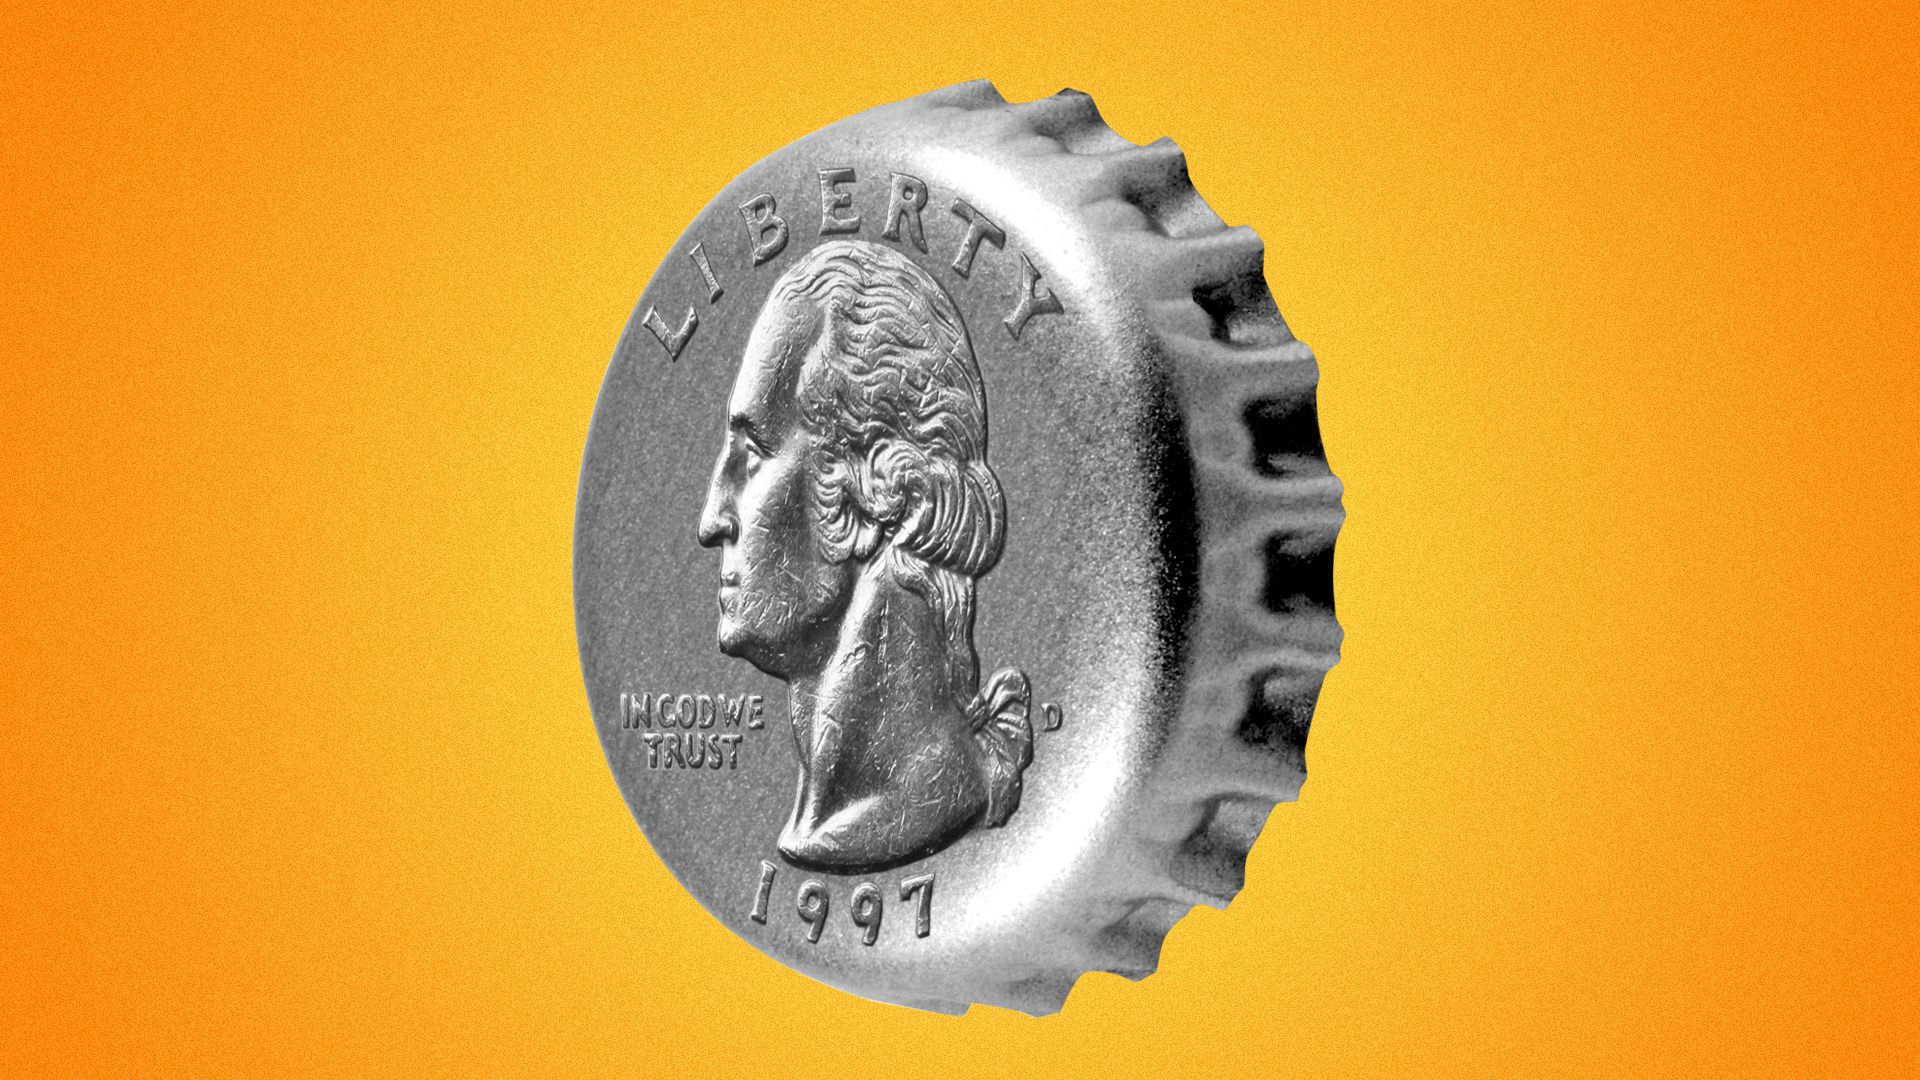 Illustration of a bottle cap with the design from a quarter on it.